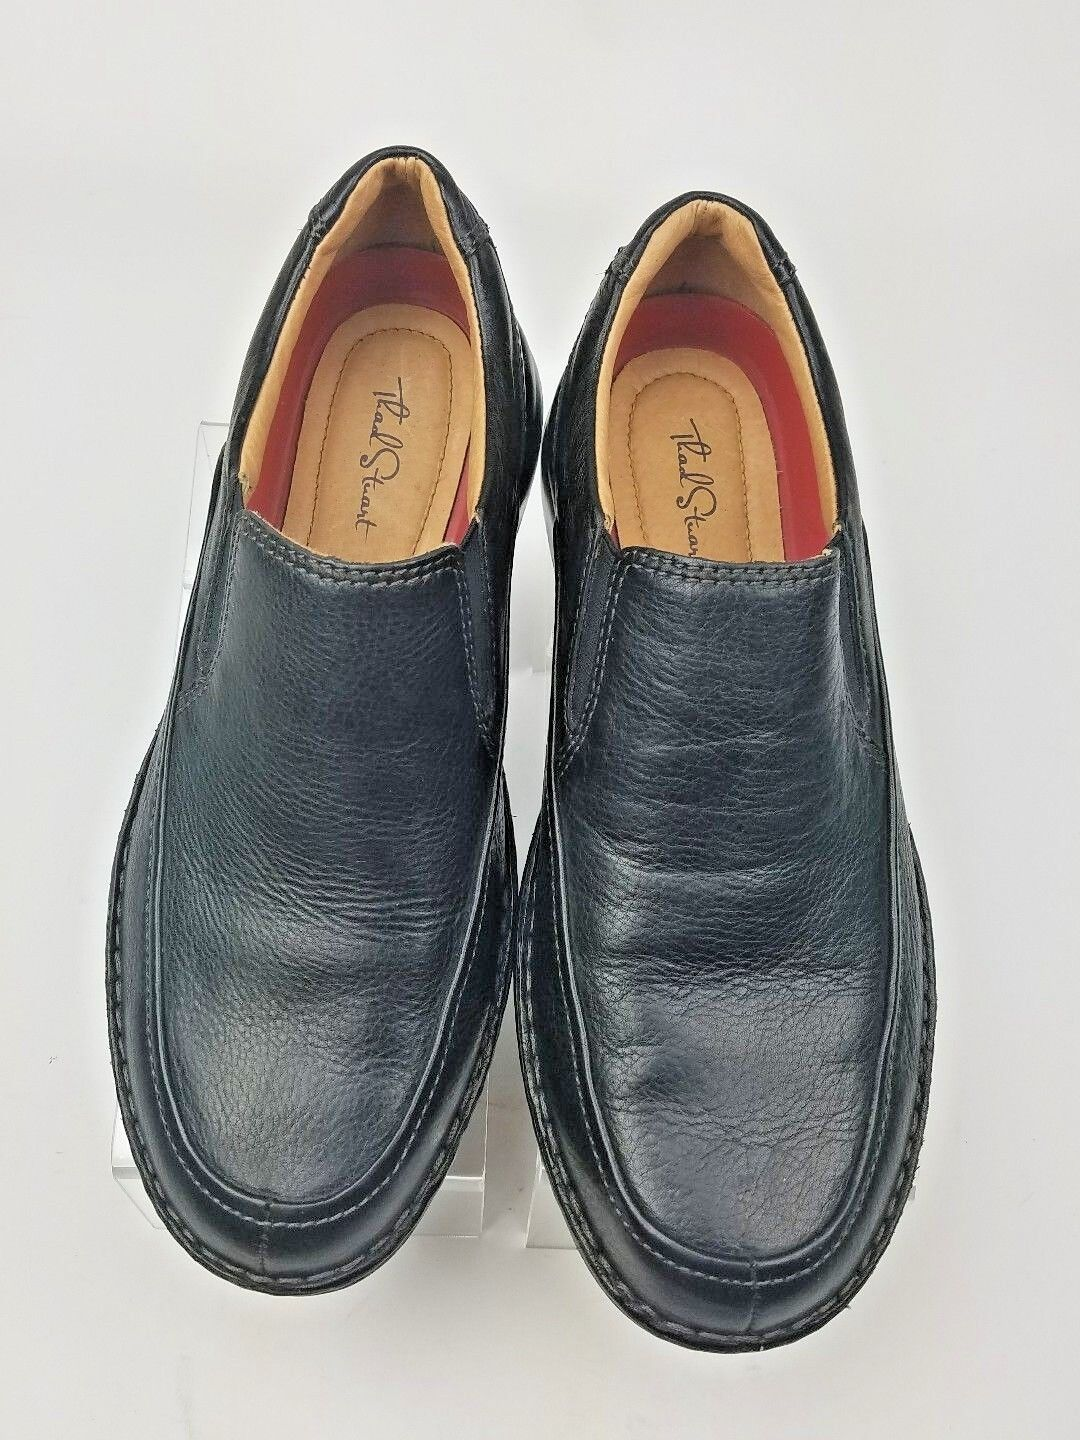 THAD LEATHER STEWART SOMERSET BLACK LEATHER THAD SLIP-ON LOAFERS SIZE 43/10 583609